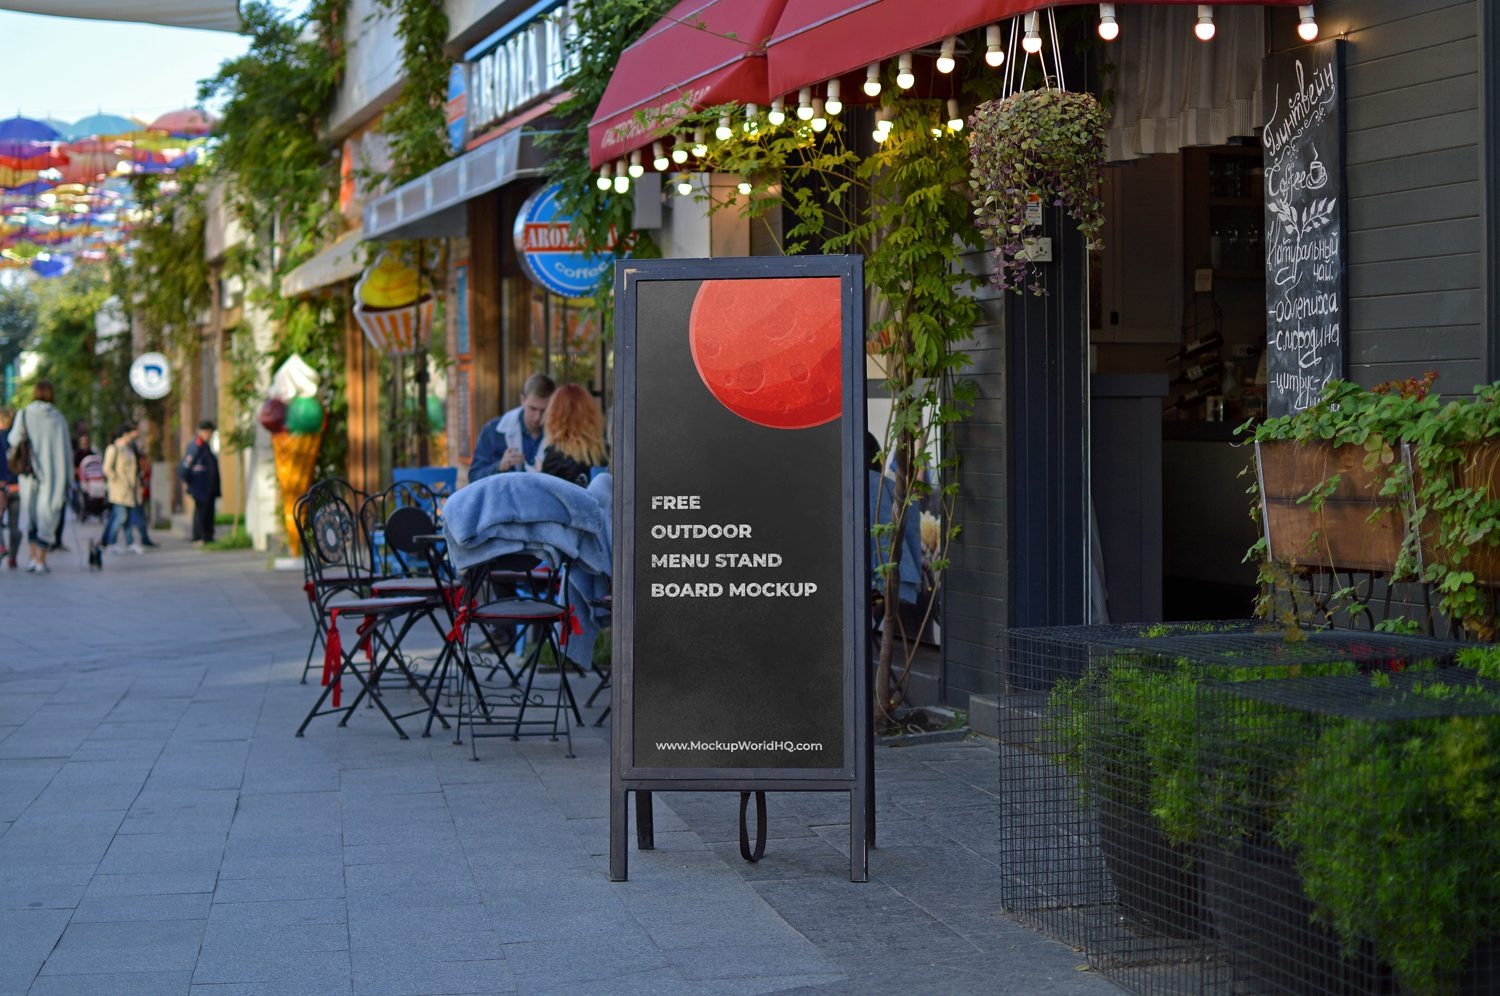 Free Outdoor Restaurant Menu Stand Board Mockup